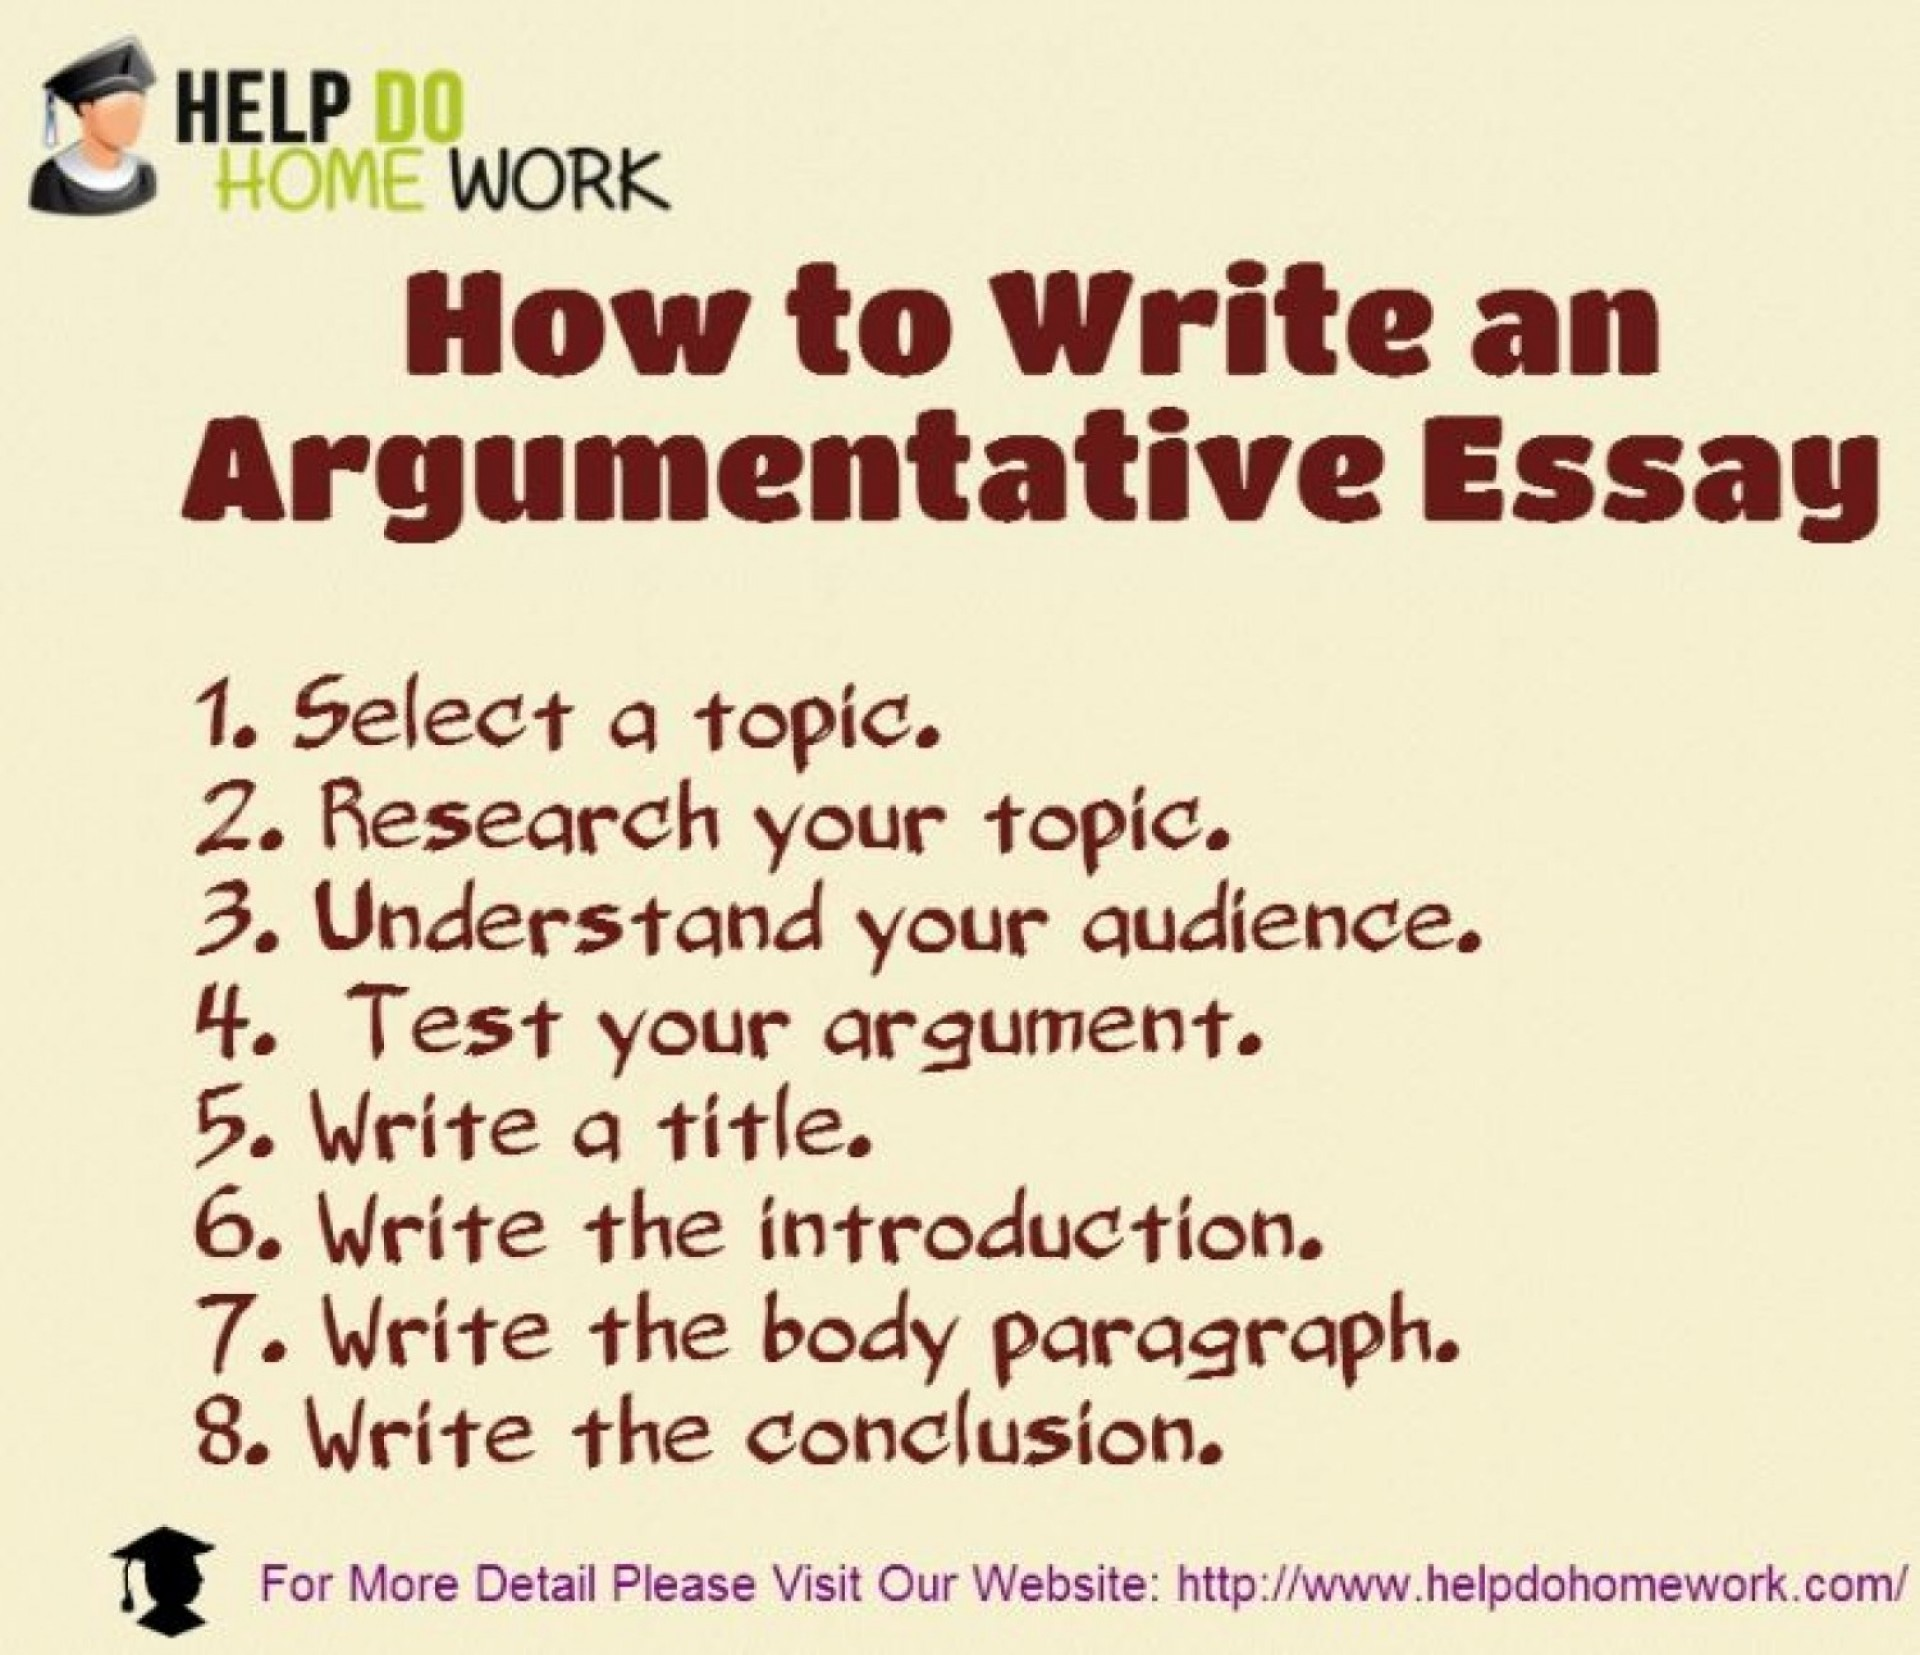 022 Essay Example Argumentativenclusion How To Write An Visual Ly Who Utilize Functional And Utilitarian Approach For Your Academic Work 53b0d9bea1f6e Ap Lang Introduction Incredible Argumentative Conclusion Format Paragraph Sample 1920